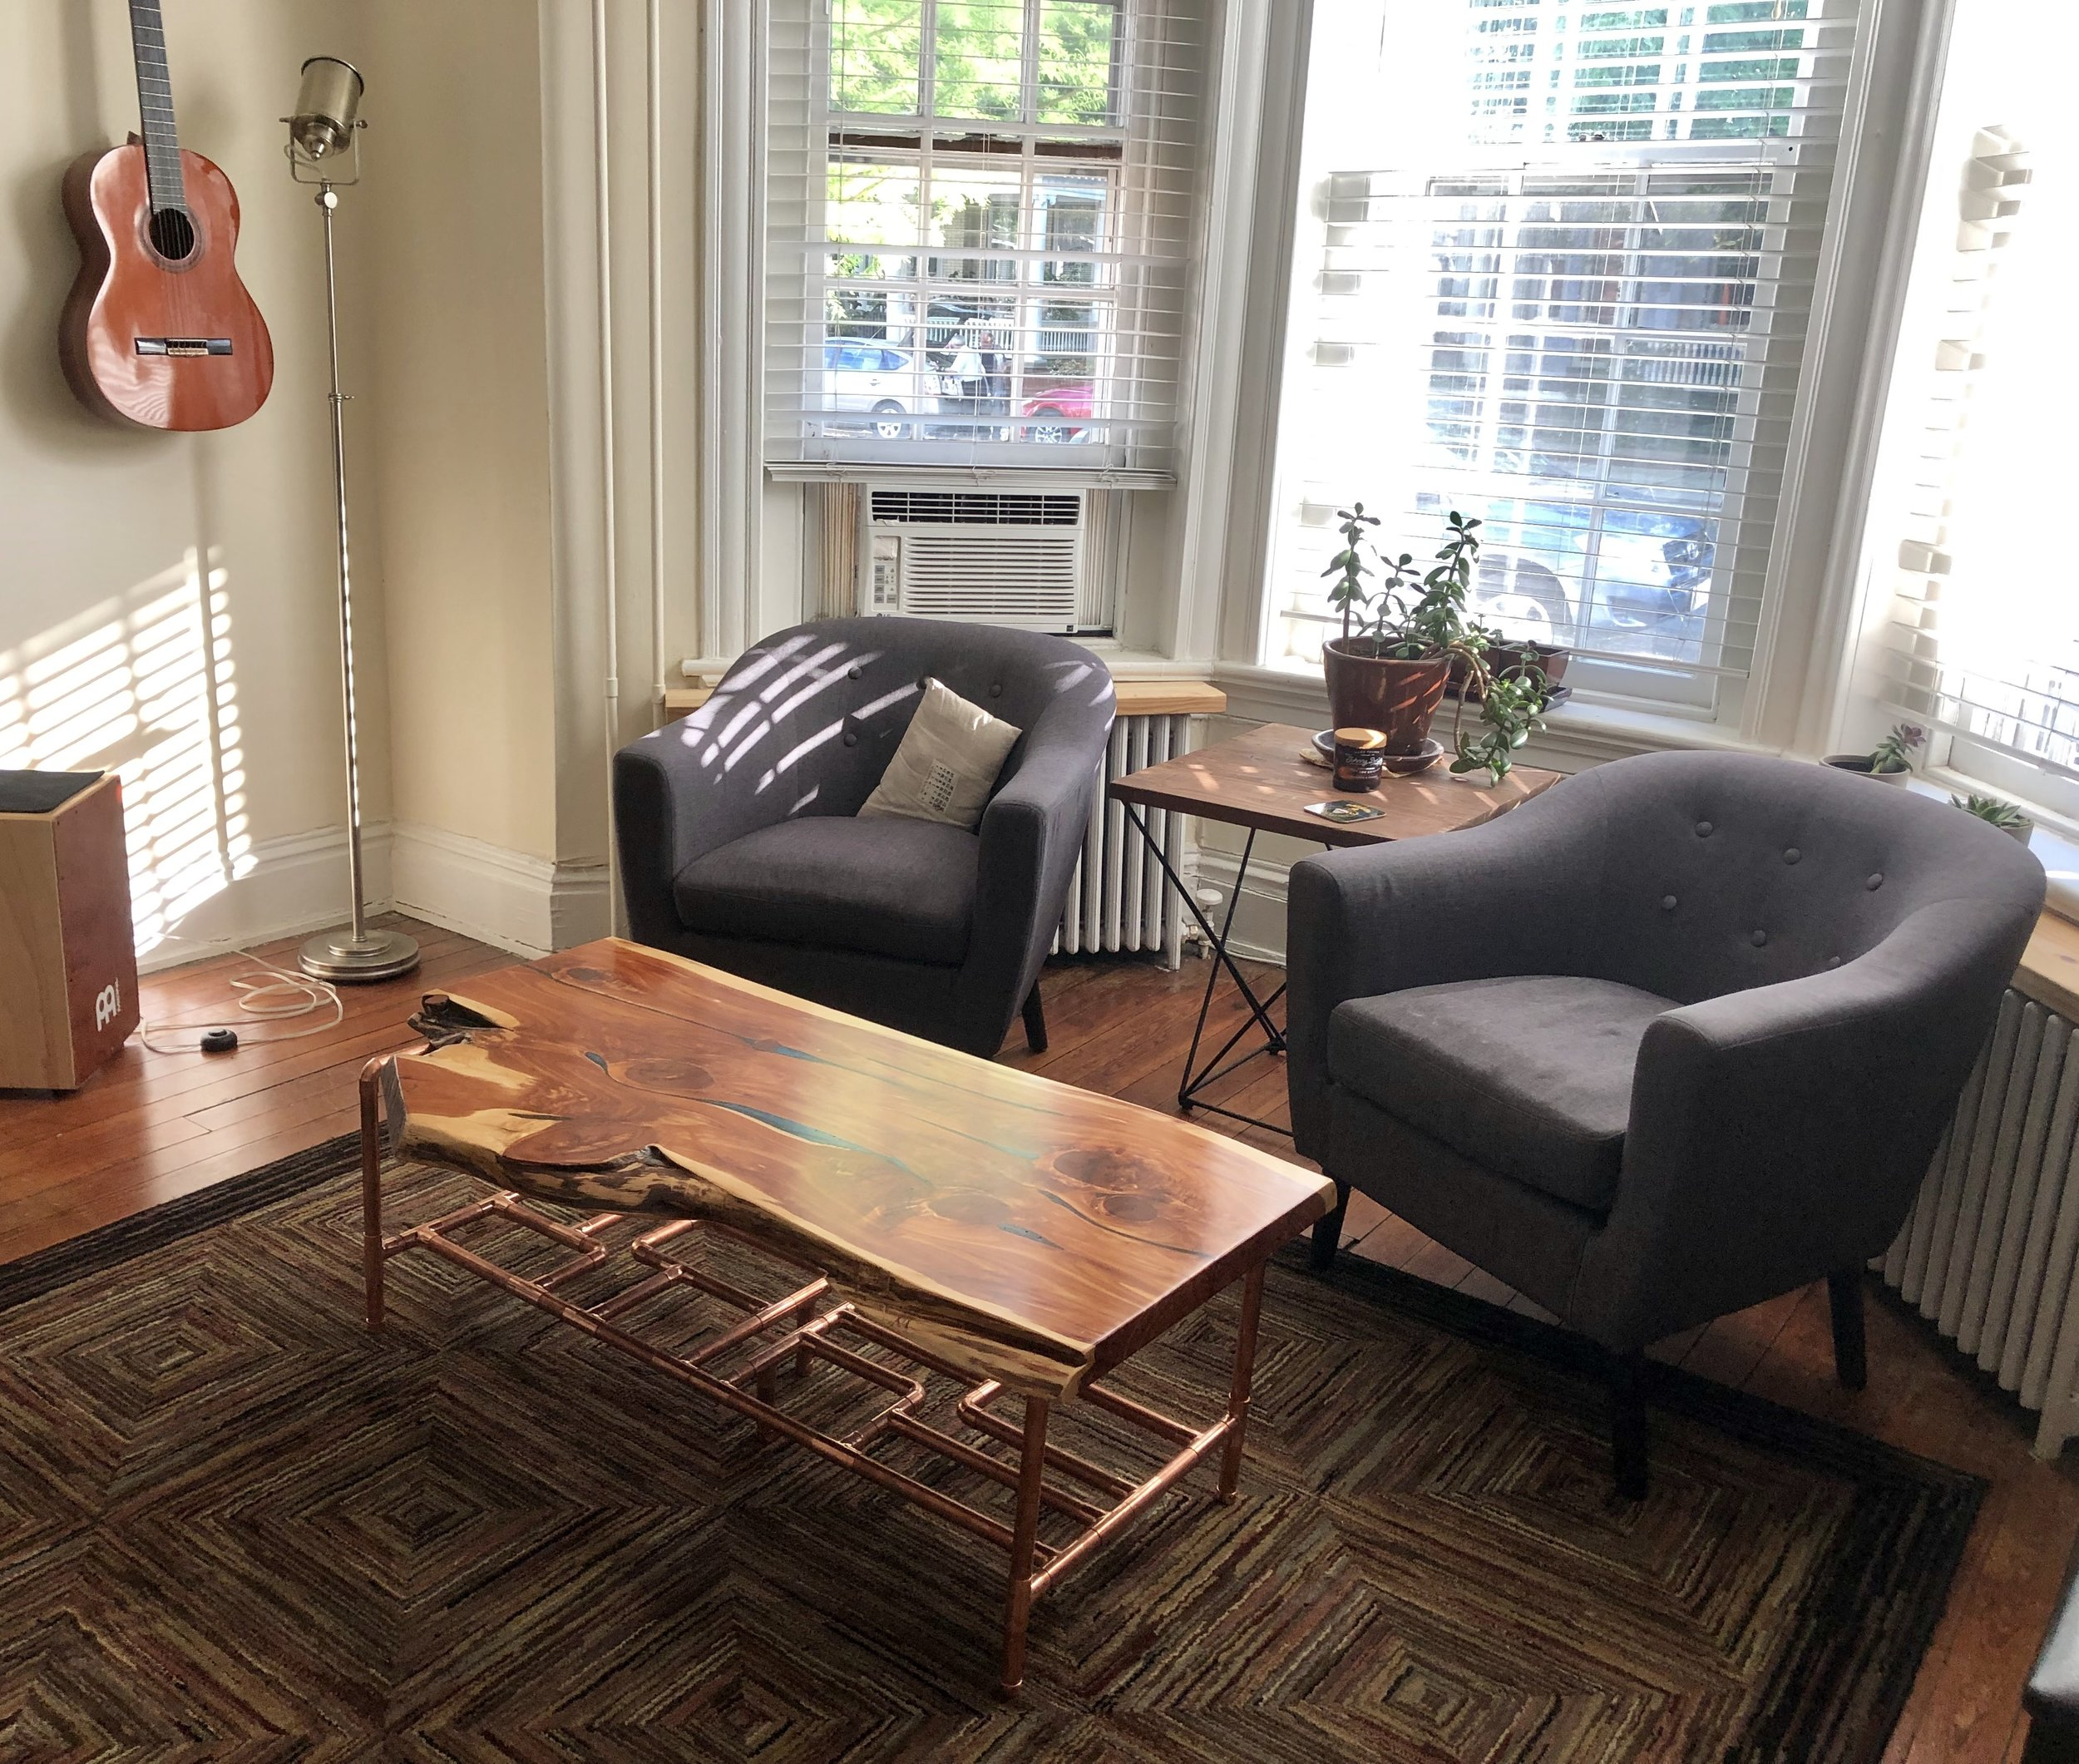 Custom Woodworking and Furniture Design company in Richmond, Virginia. One woman owned and operated. Handcrafted with integrity and uncompromised quality. Live Edge coffee table. live edge furniture. rva made. epoxy inlay. RVA Fine Furniture Maker. Aromatic Cedar Table